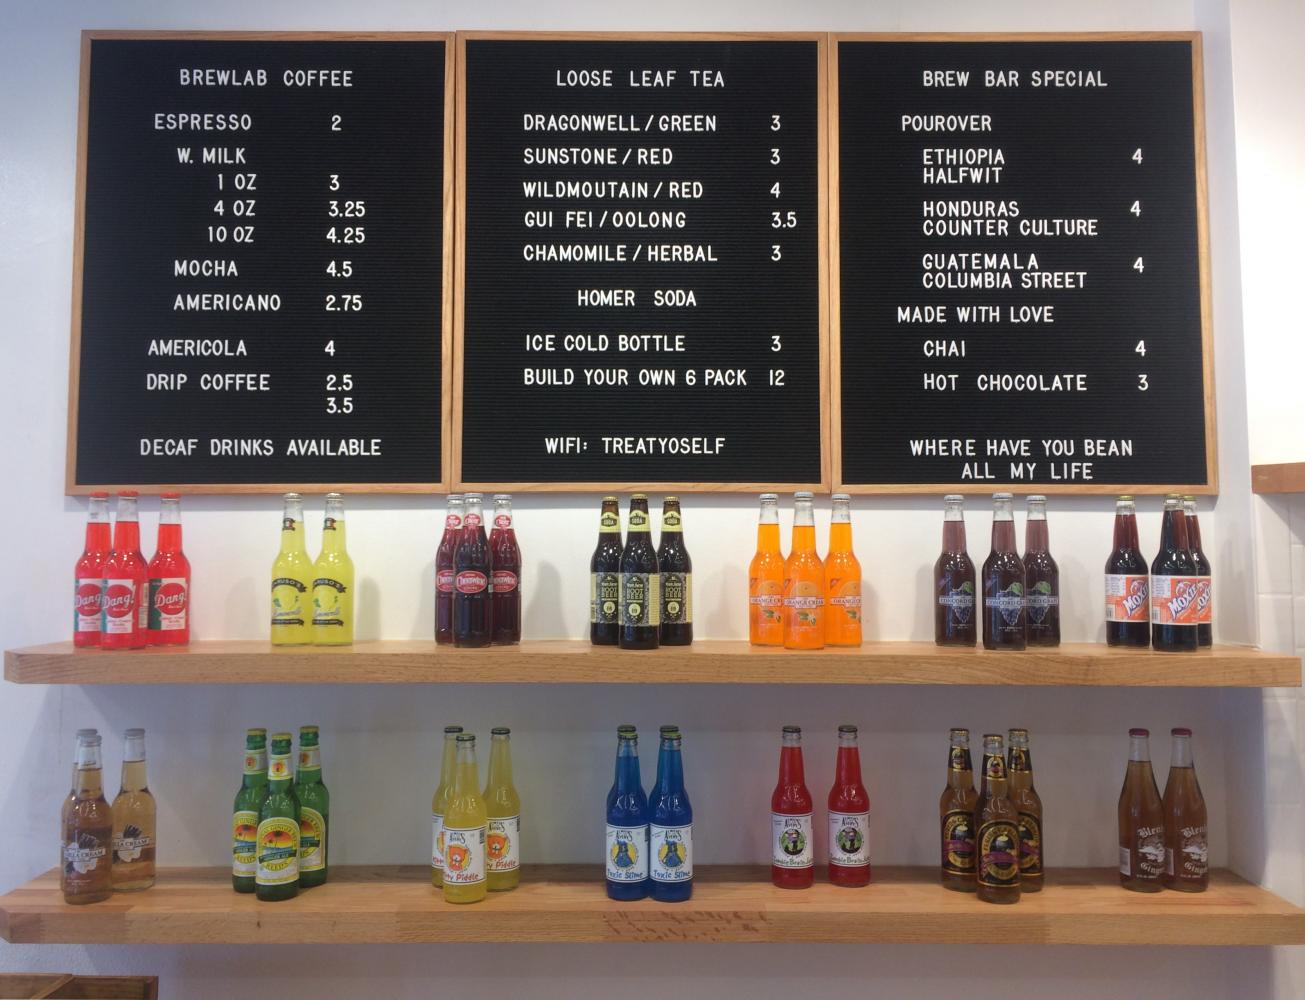 The menu at BrewLab sits above the store's craft soda bottles. BrewLab, recently opened and located in Campustown, serves specialty espresso drinks as well as craft soda.